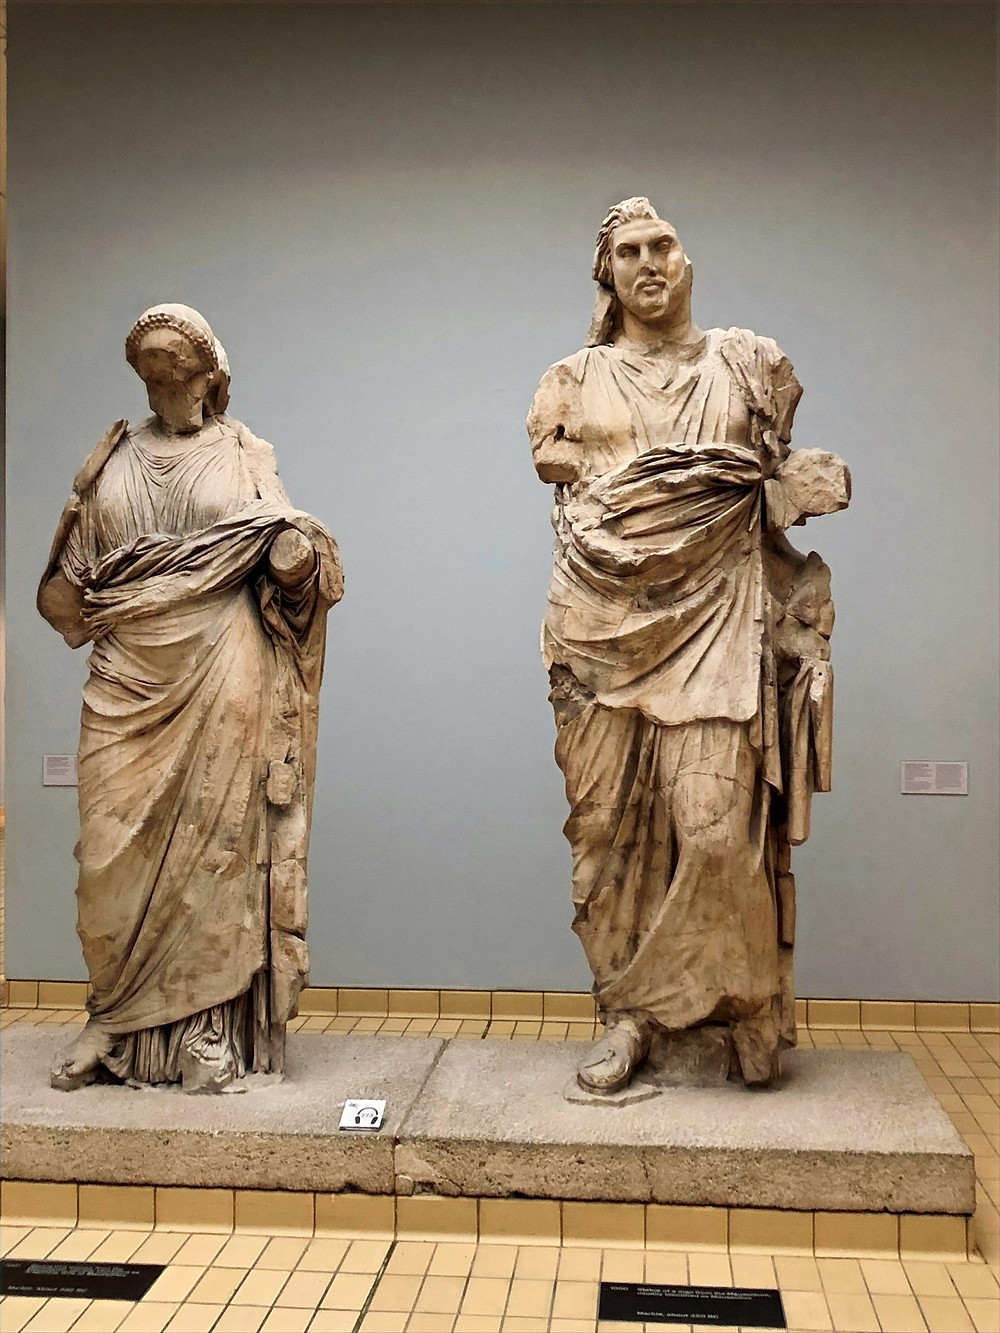 play in The British Museum are colossal statues (over 9 feet tall) of a man and a woman, from the Mausoleum at Halicarnassus